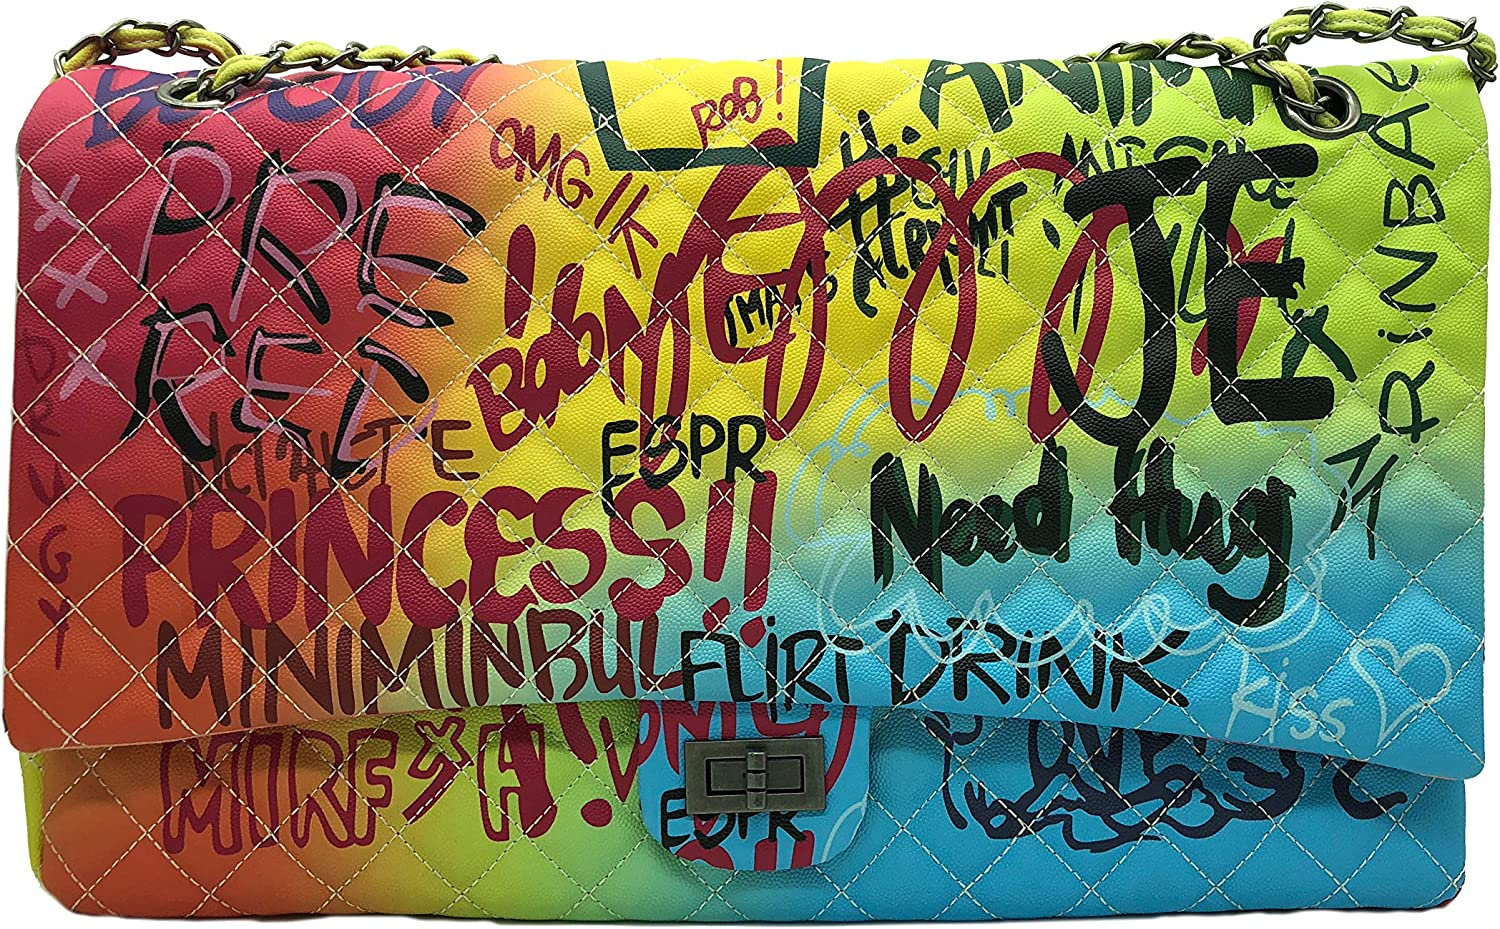 Color Graffiti Printed Max 64% OFF Max 79% OFF Shoulder Big Fashion Large T Quilted Bags